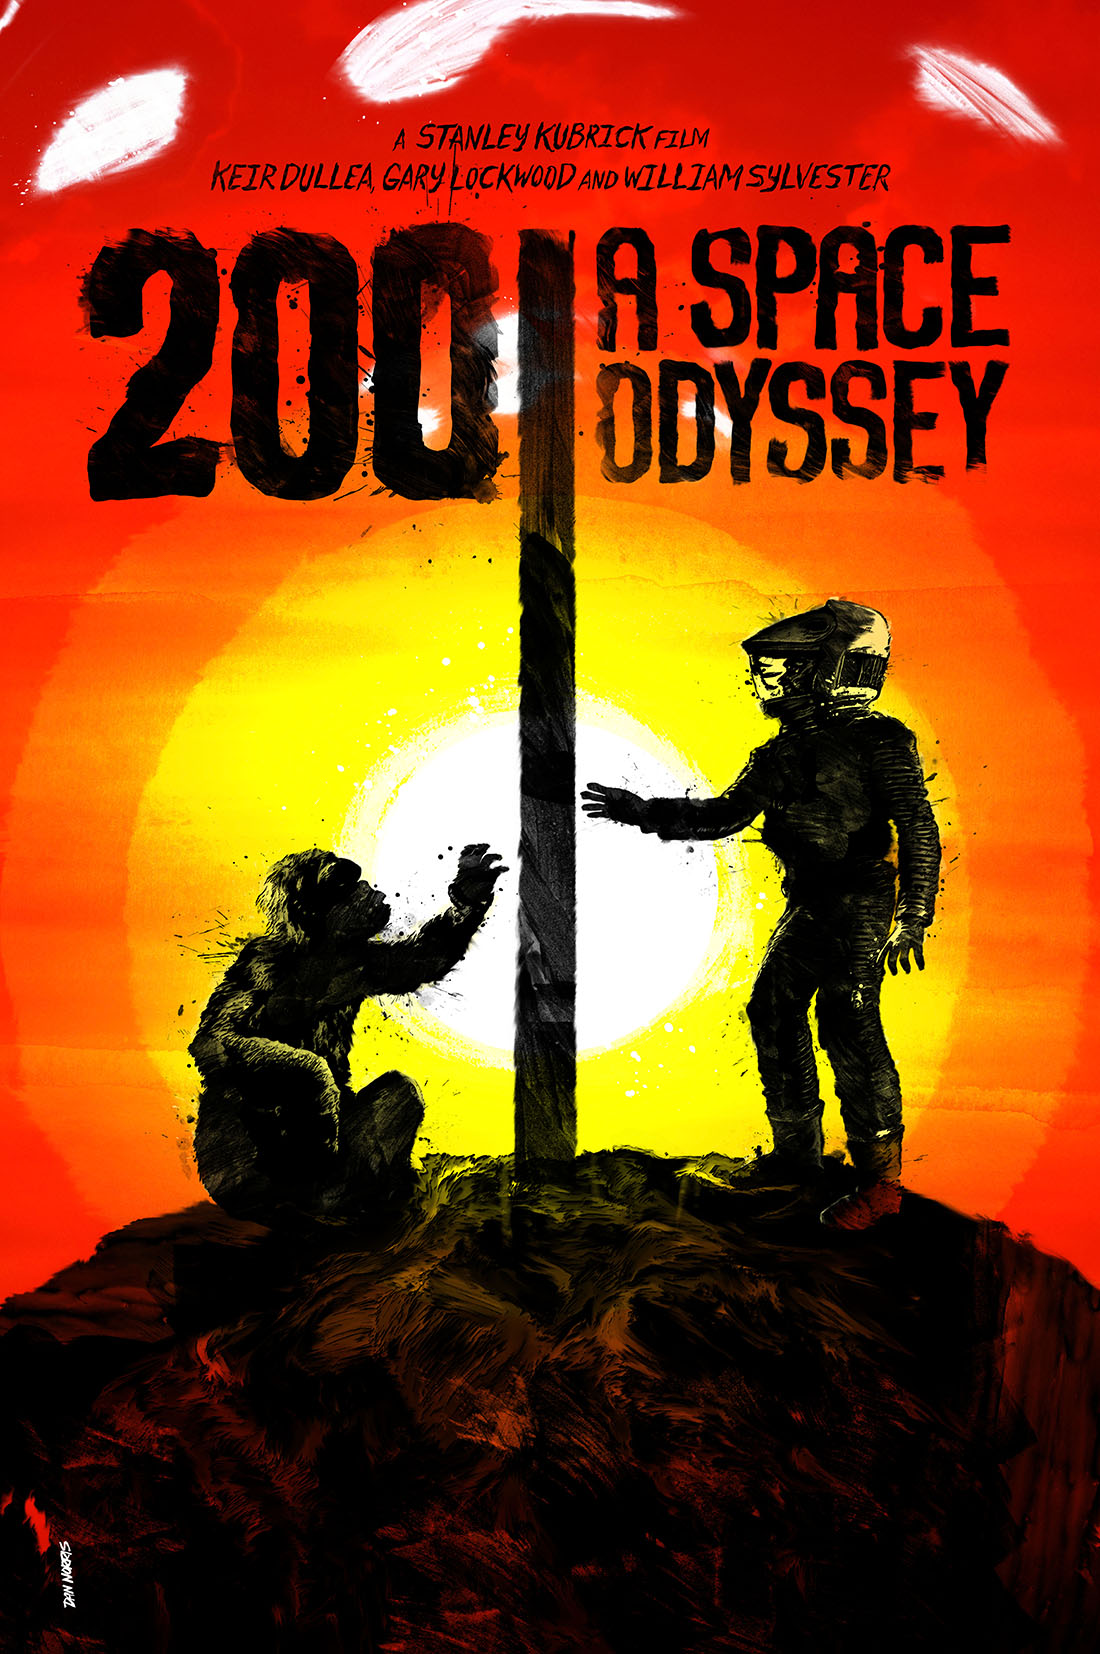 "essays on 2001 a space odyssey Andrei tarkovsky's 1972 film solaris has been called the russian 2001: a space odyssey, but solaris might more appropriately be labeled the anti-2001 that's the premise of ""auteur in space,"" an enlightening video essay from kogonada, whose videos explore directors' signature habits kogonaga."